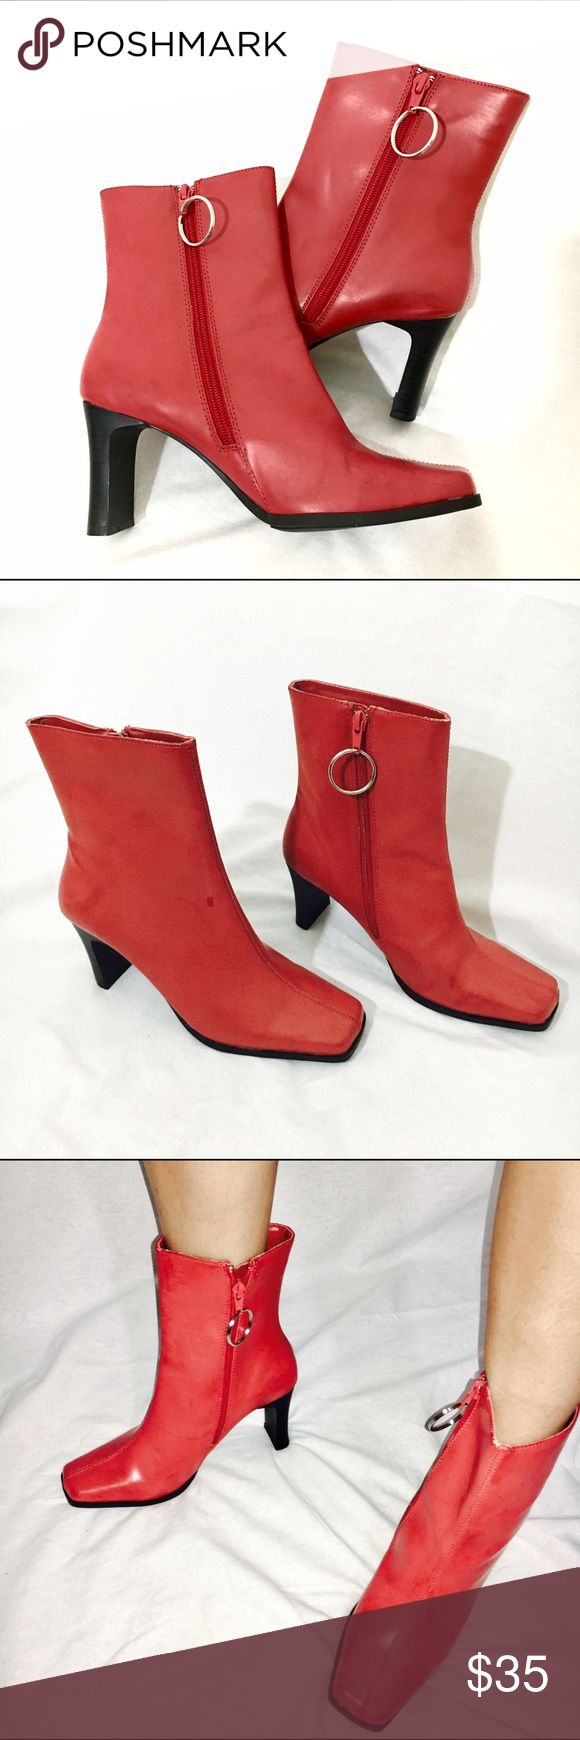 Red Boots 🍒🔥 Vintage 90s red boots with o ring zipper, like new condition , offers welcome Shoes Ankle Boots & Booties